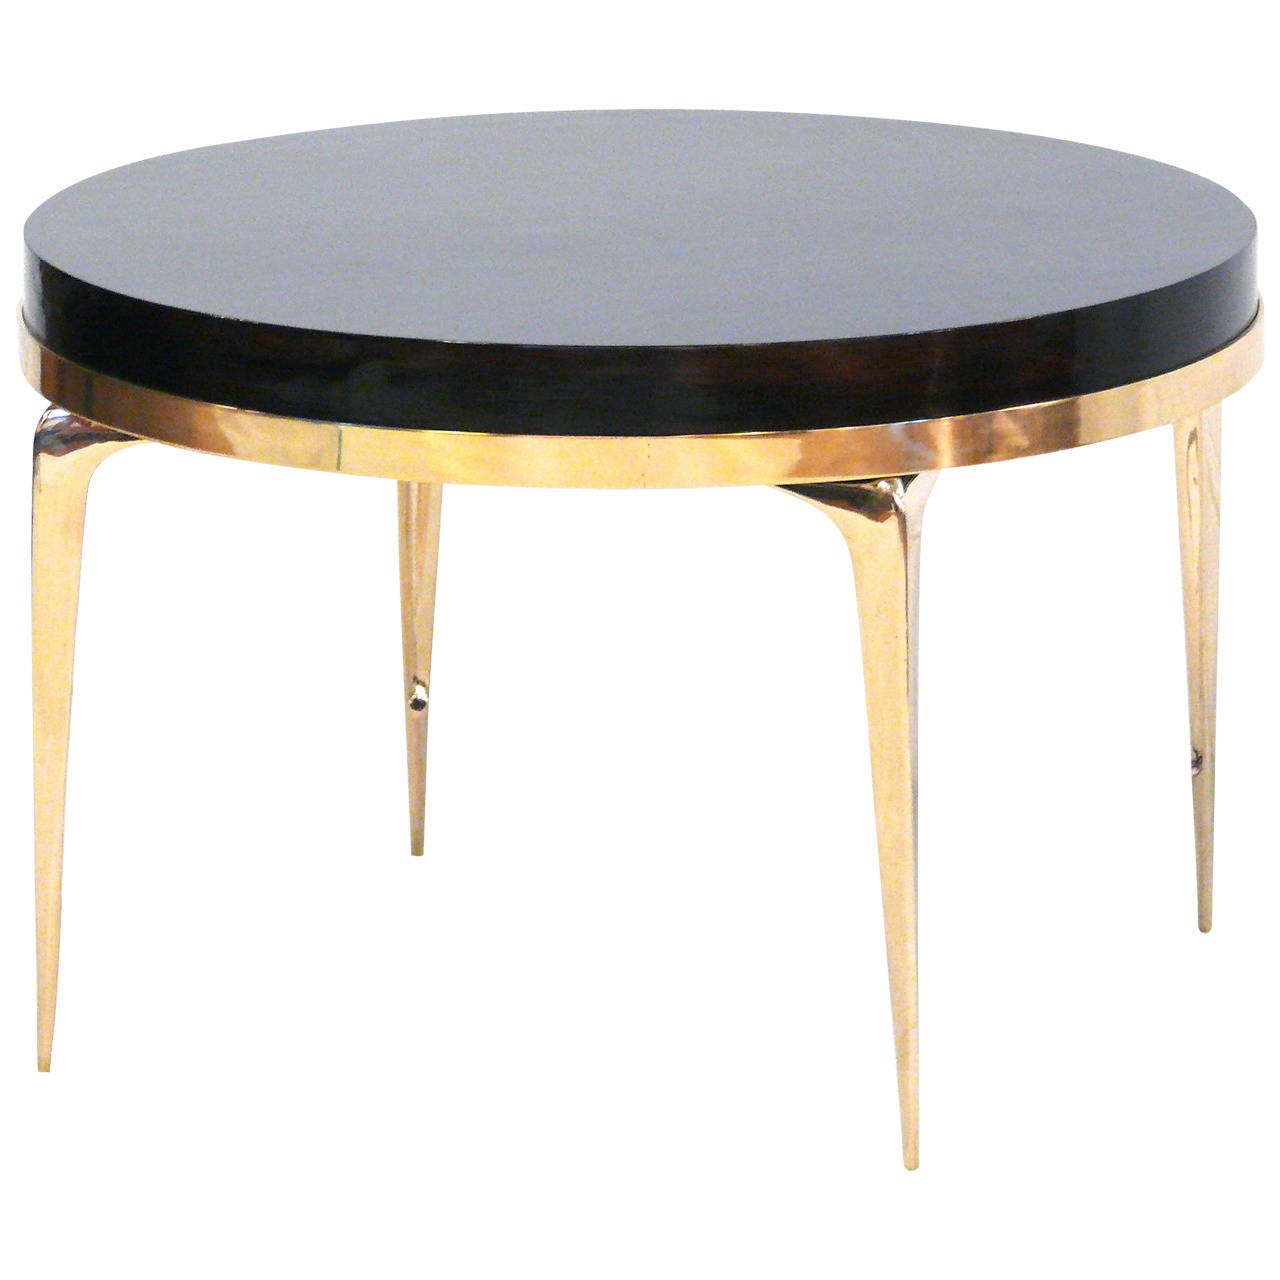 CF MODERN Custom Brass Banded Round Stiletto Side Table